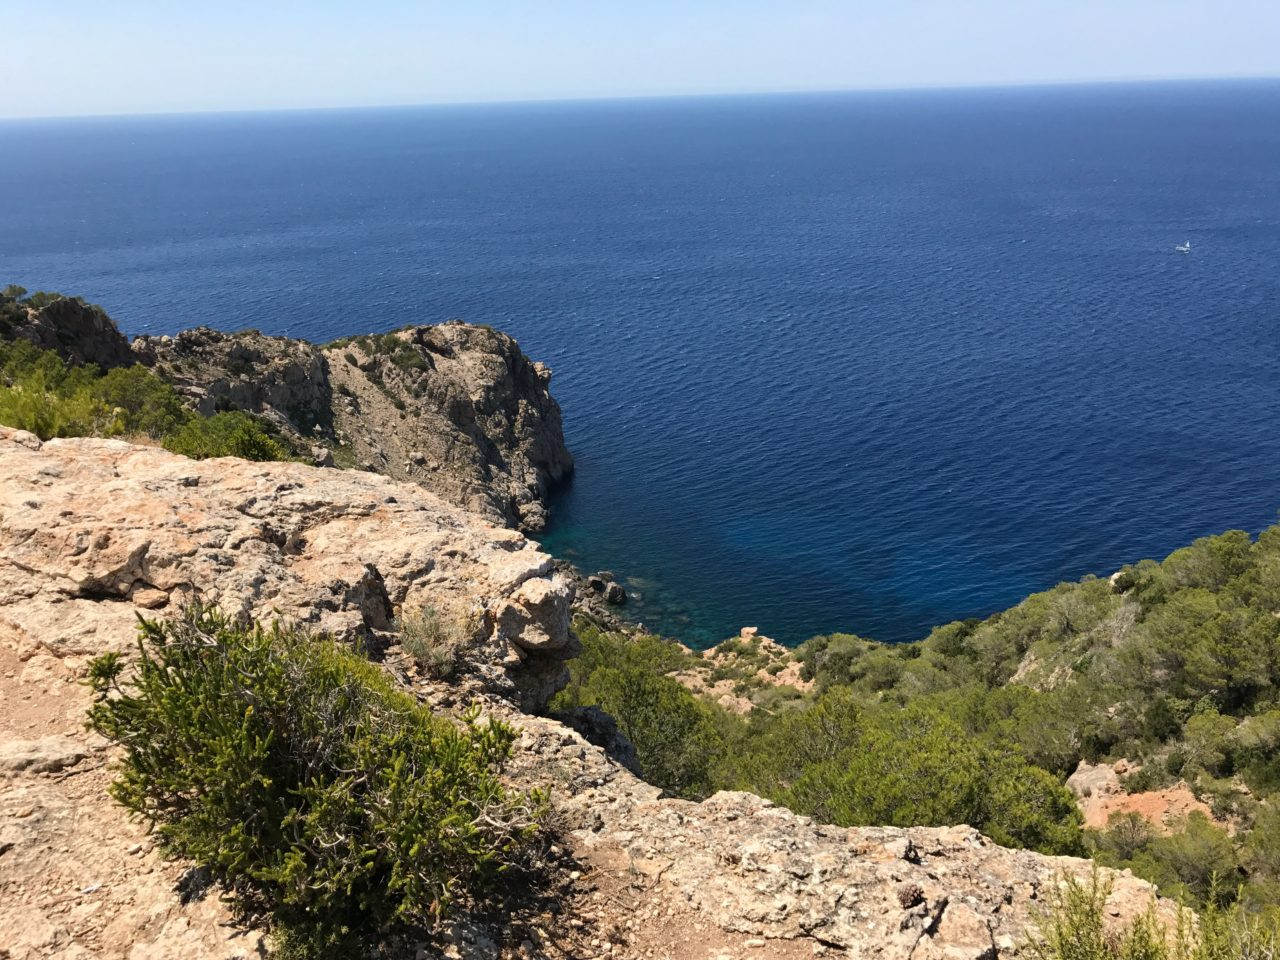 View Of An Ocean Cove From On Top Of A Cliff Side